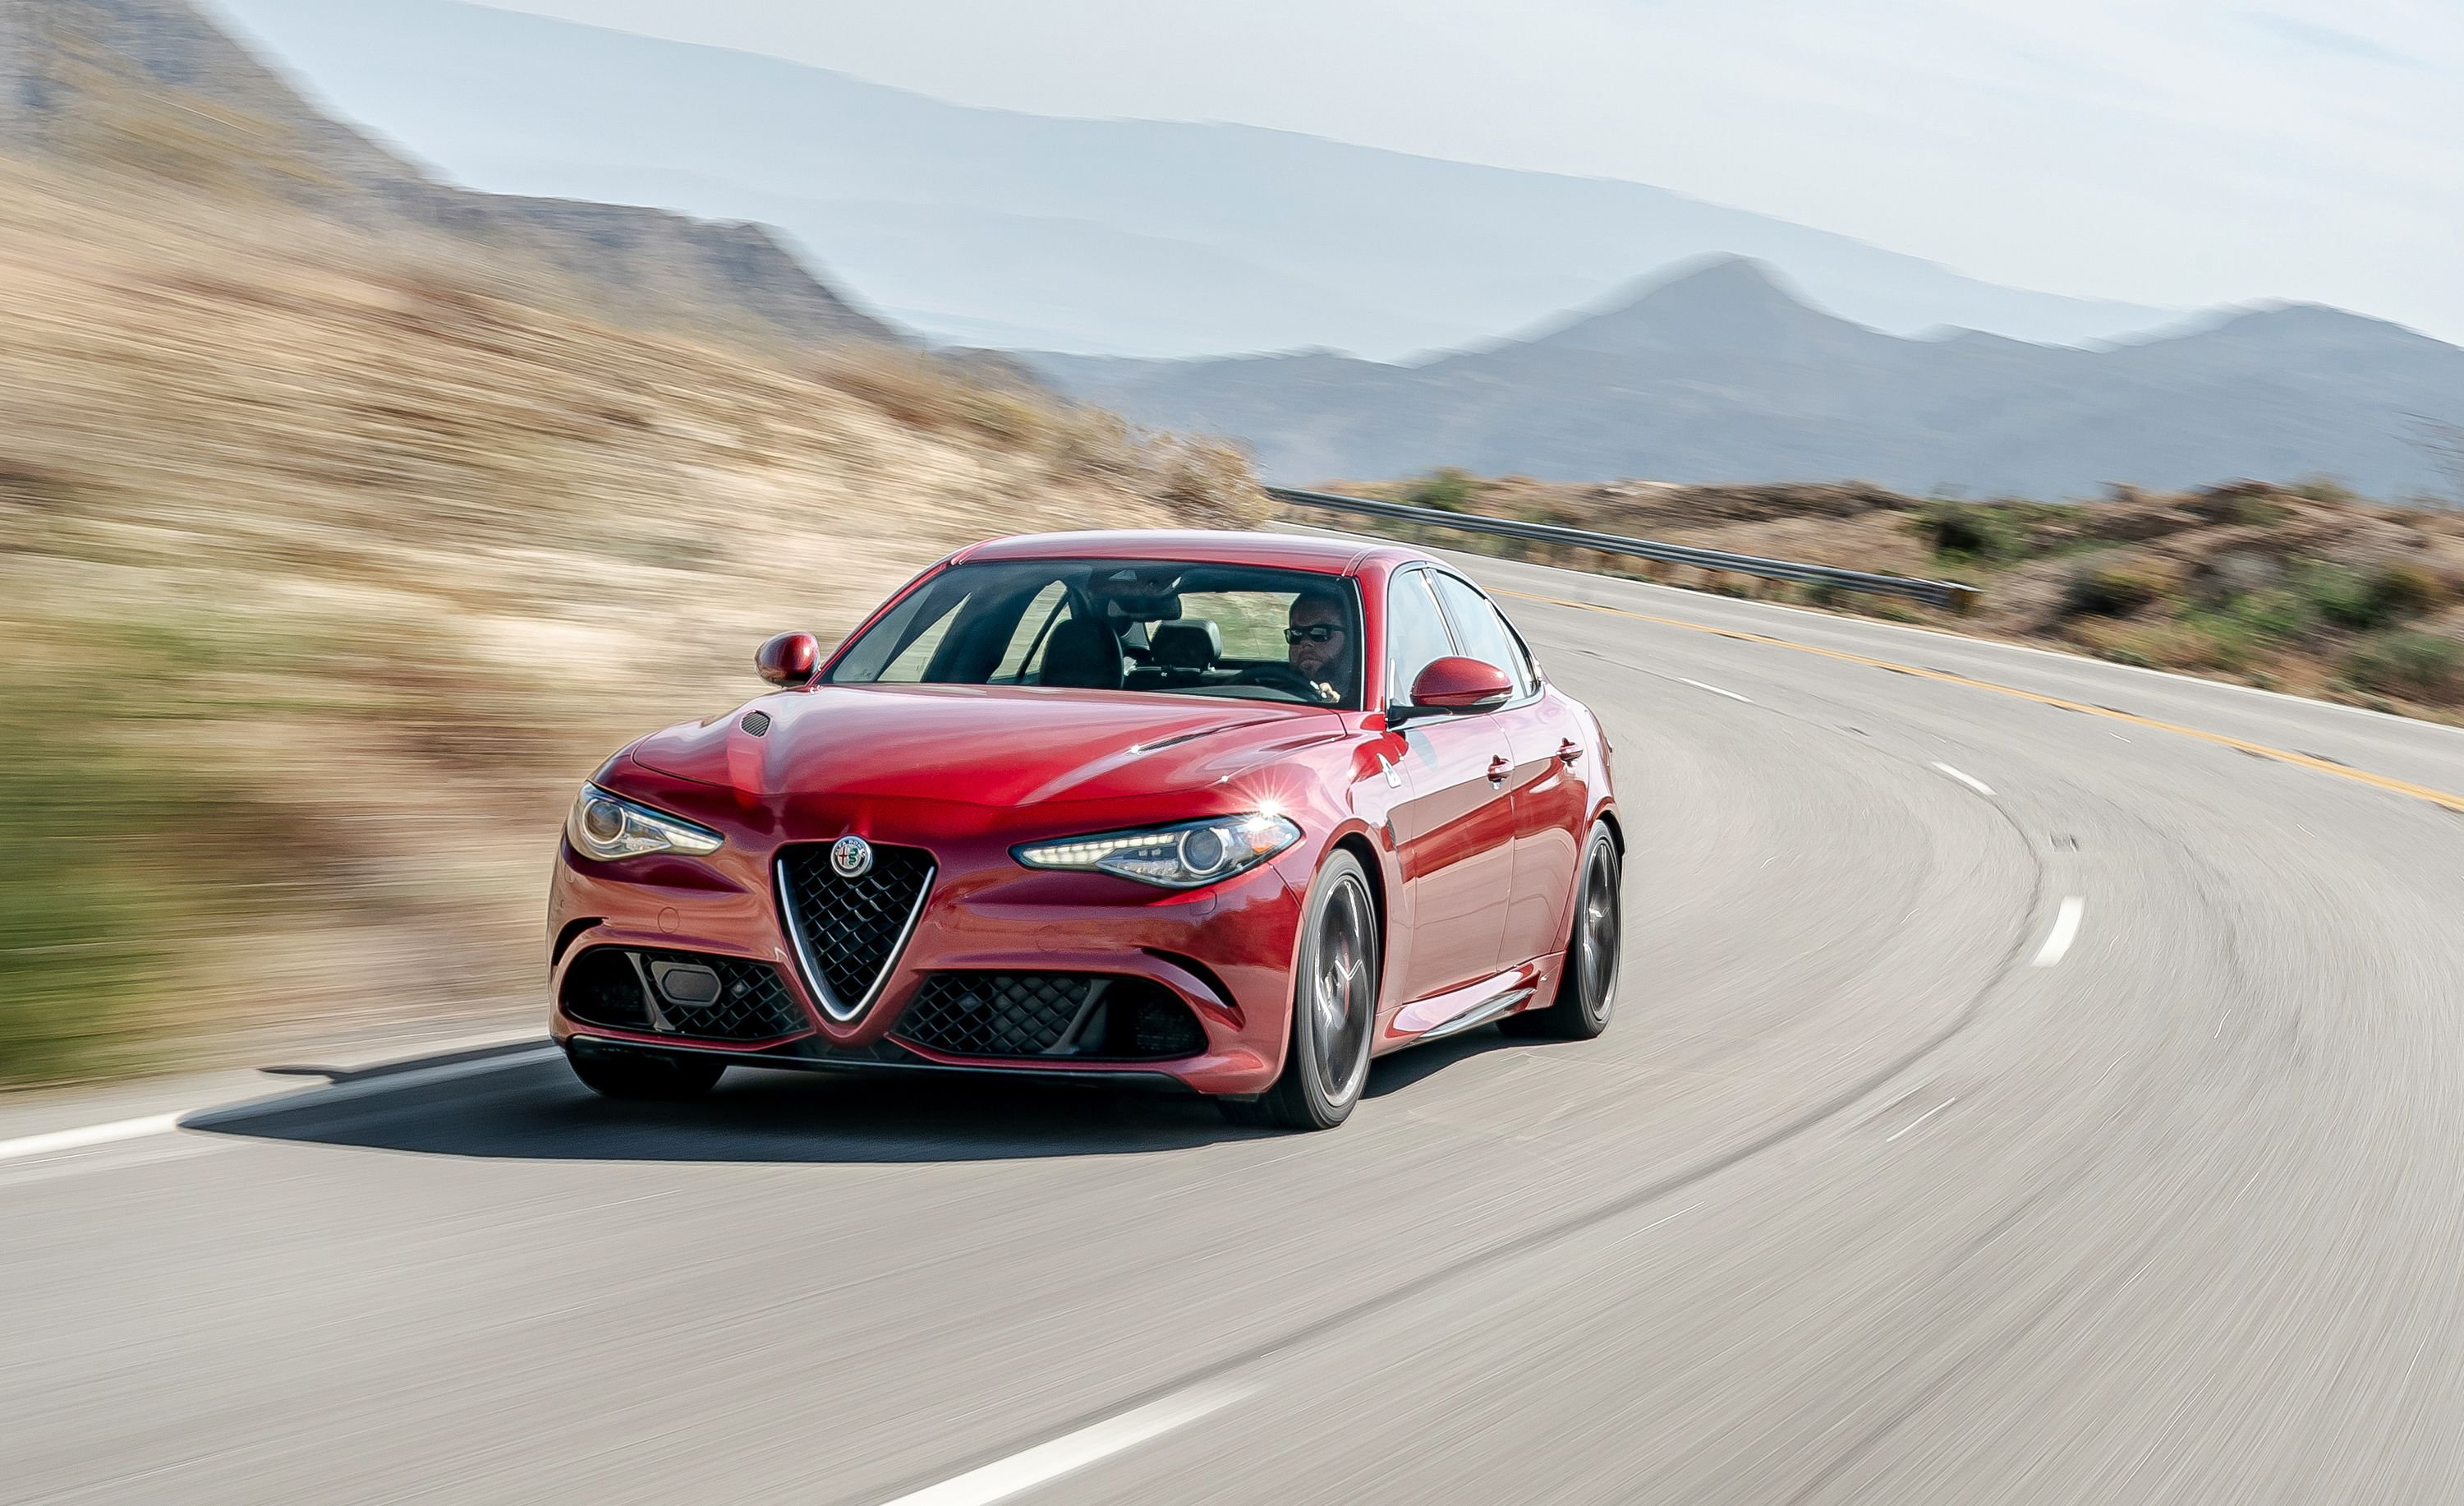 How Reliable Is the 2018 Alfa Romeo Giulia Quadrifoglio?